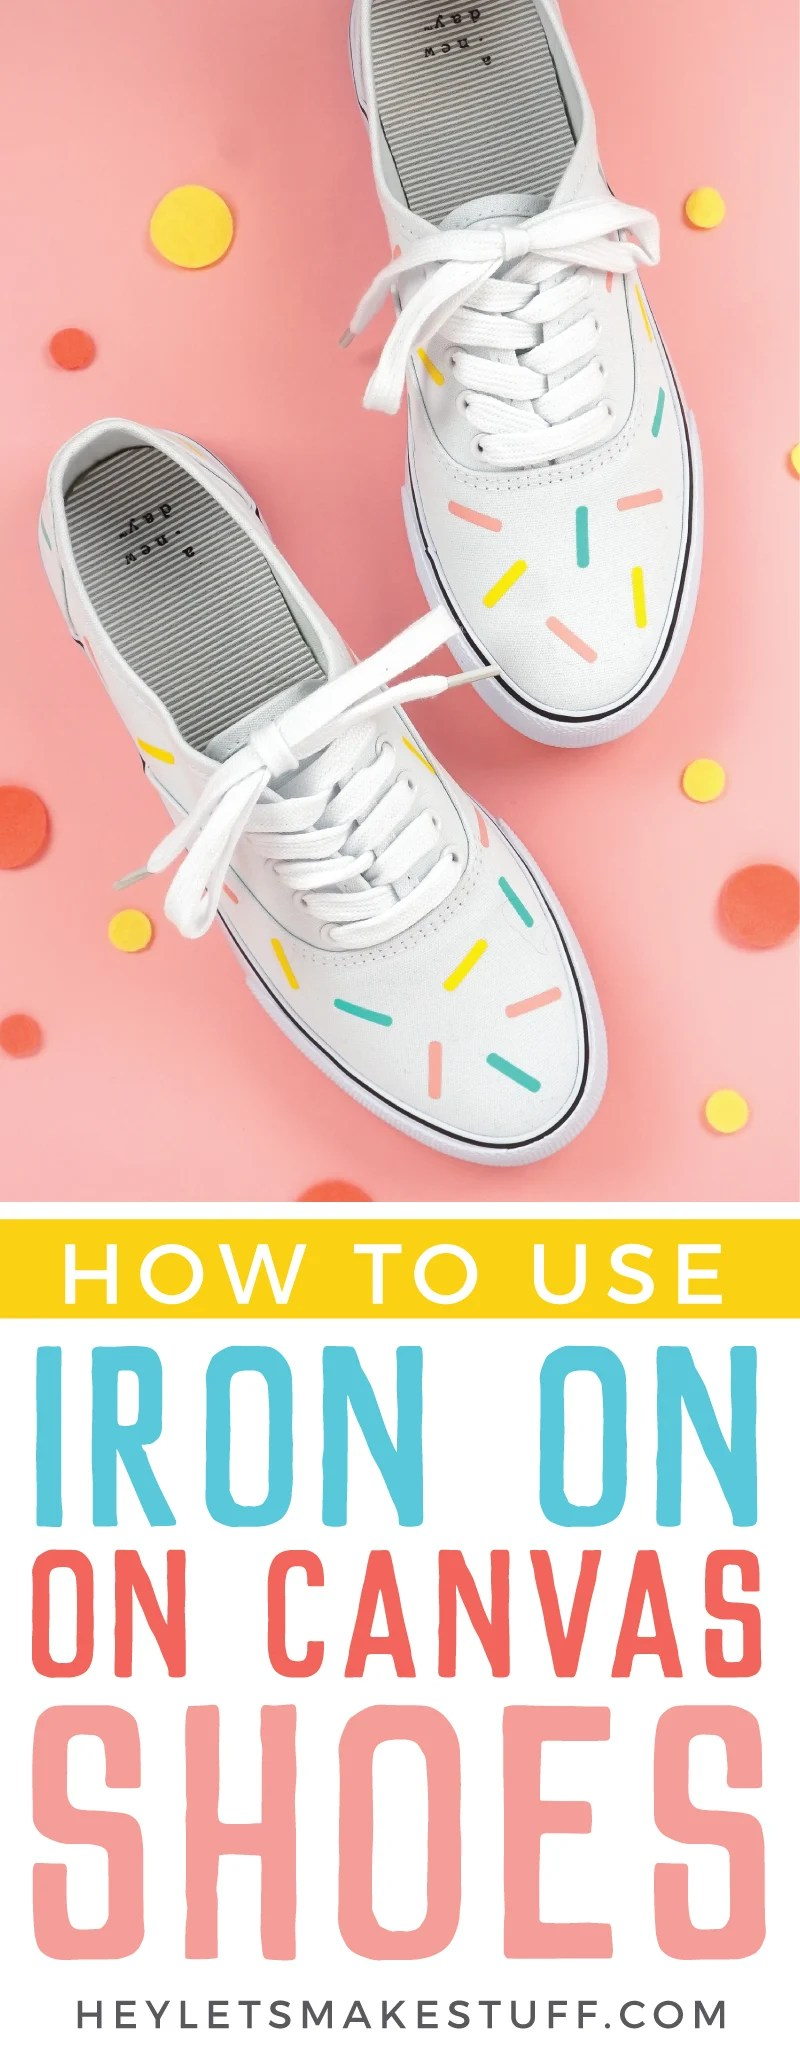 The new Cricut EasyPress Mini makes it easy to make projects like these sprinkle iron on shoes! The small pressing plate and even heating work great on curved surfaces and over seams.  via @heyletsmakestuf